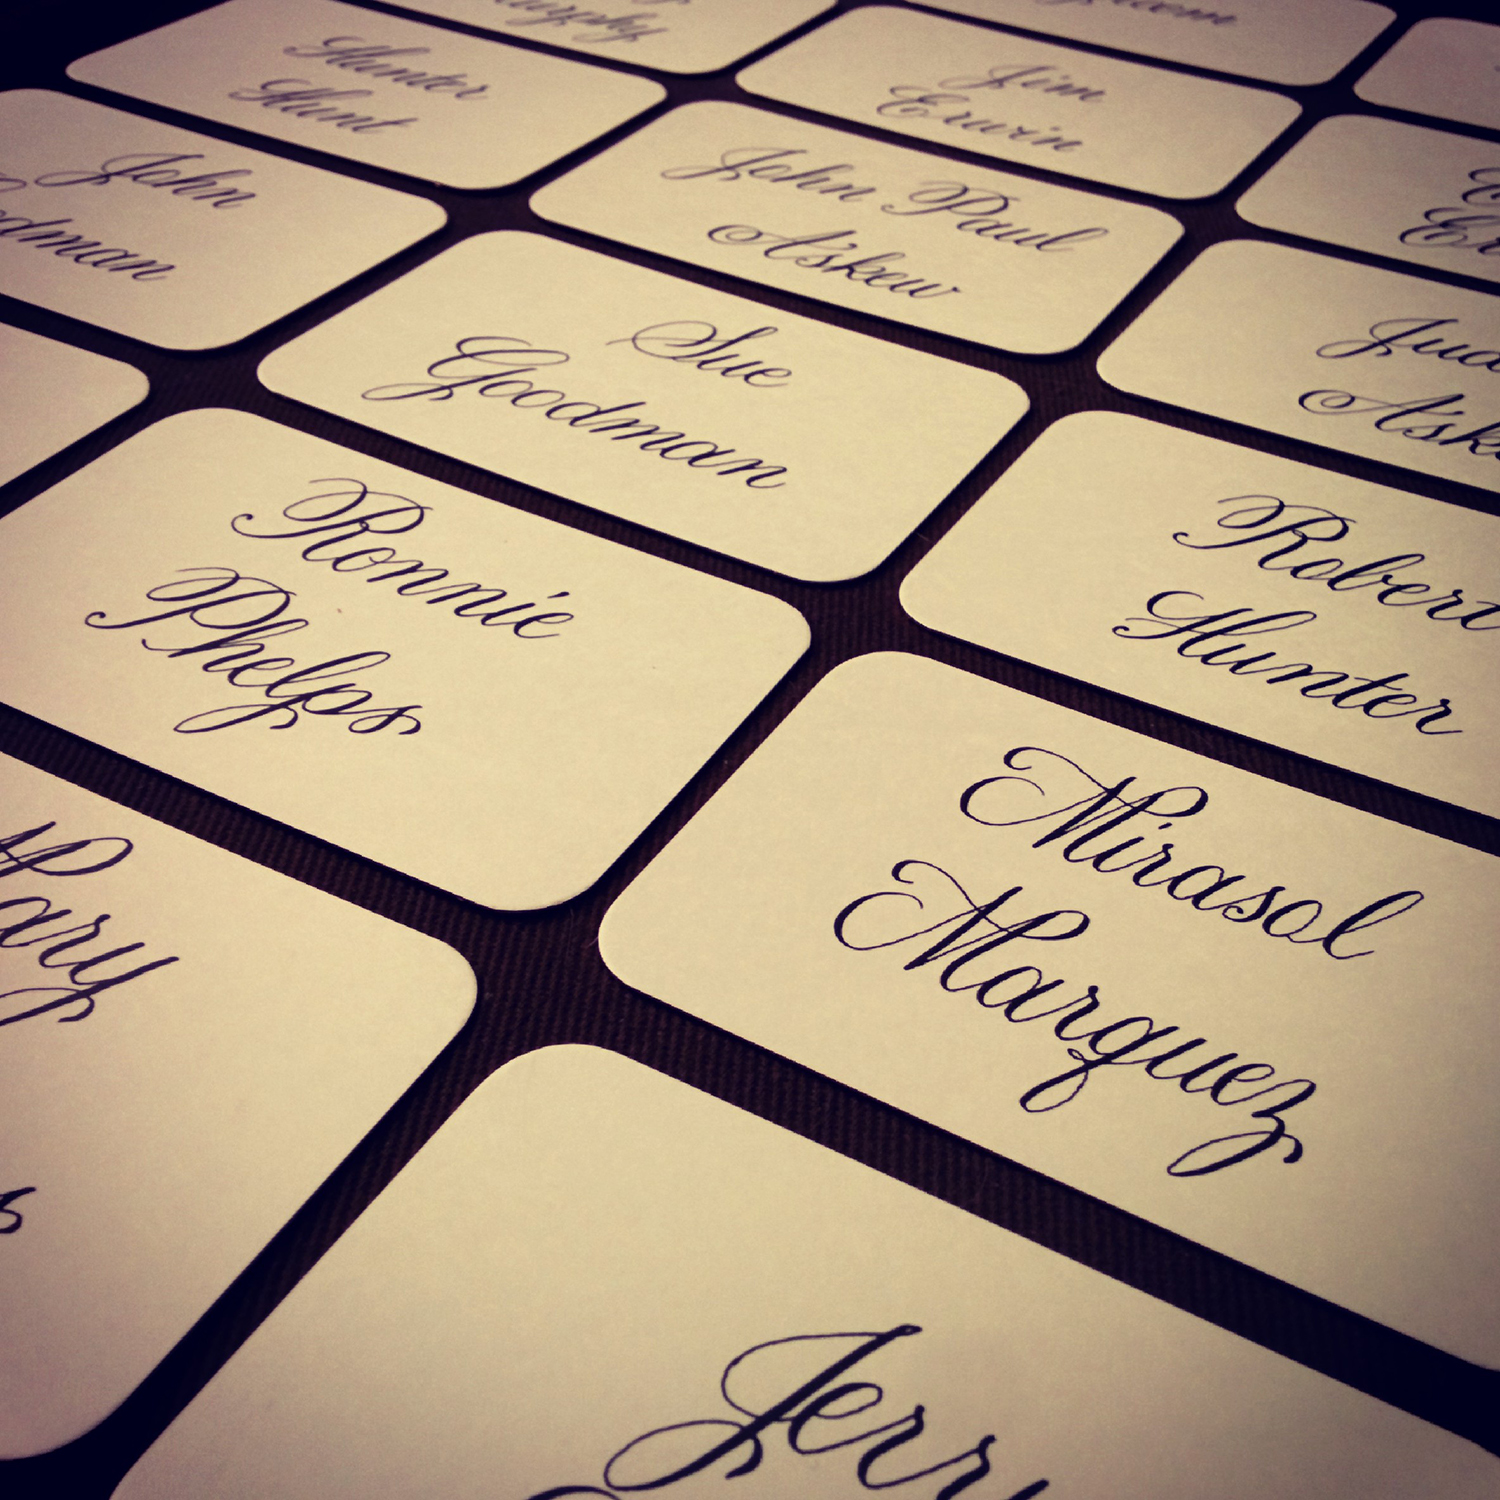 calligraphy-place-cards-vienna-black-ink-on-white.jpg